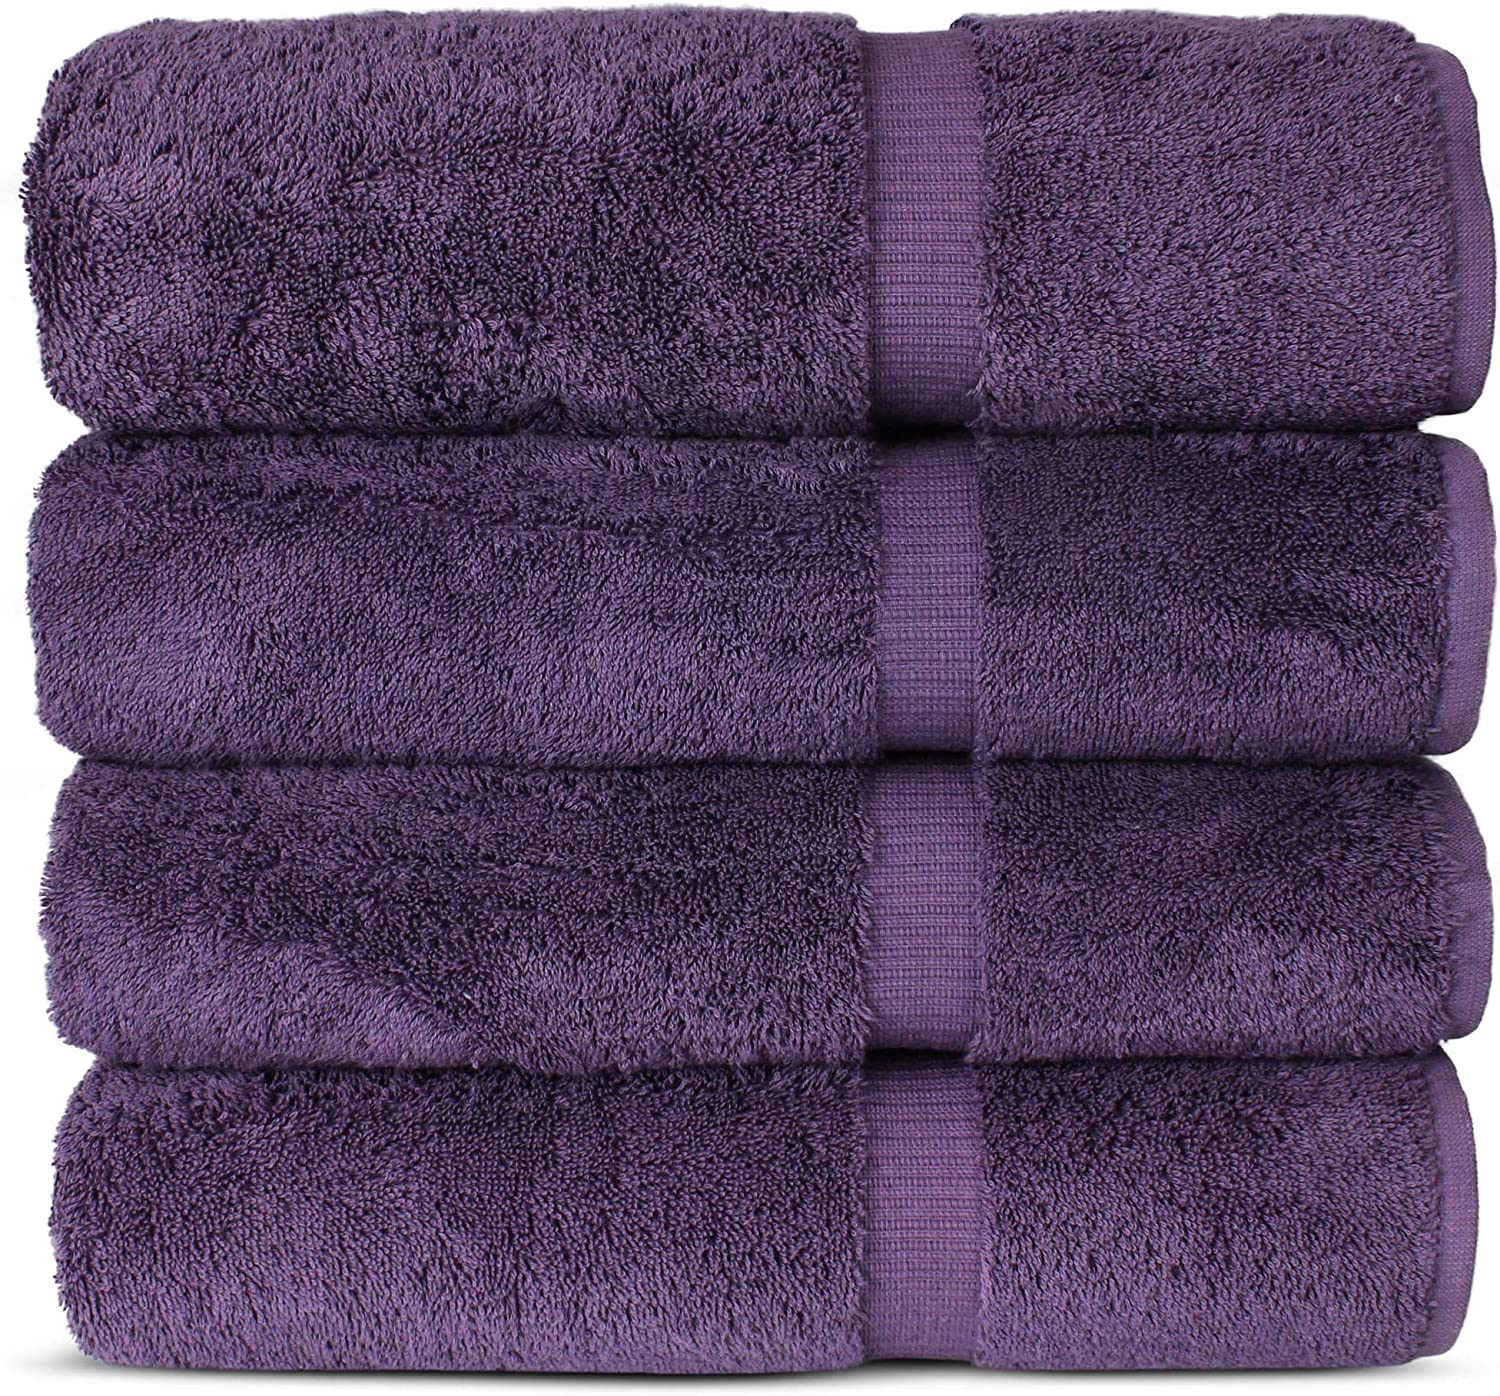 "Luxury Hotel & Spa 100% Cotton Premium Turkish Bath Towels, 27"" x 54'' (Set of 4, Plum)"